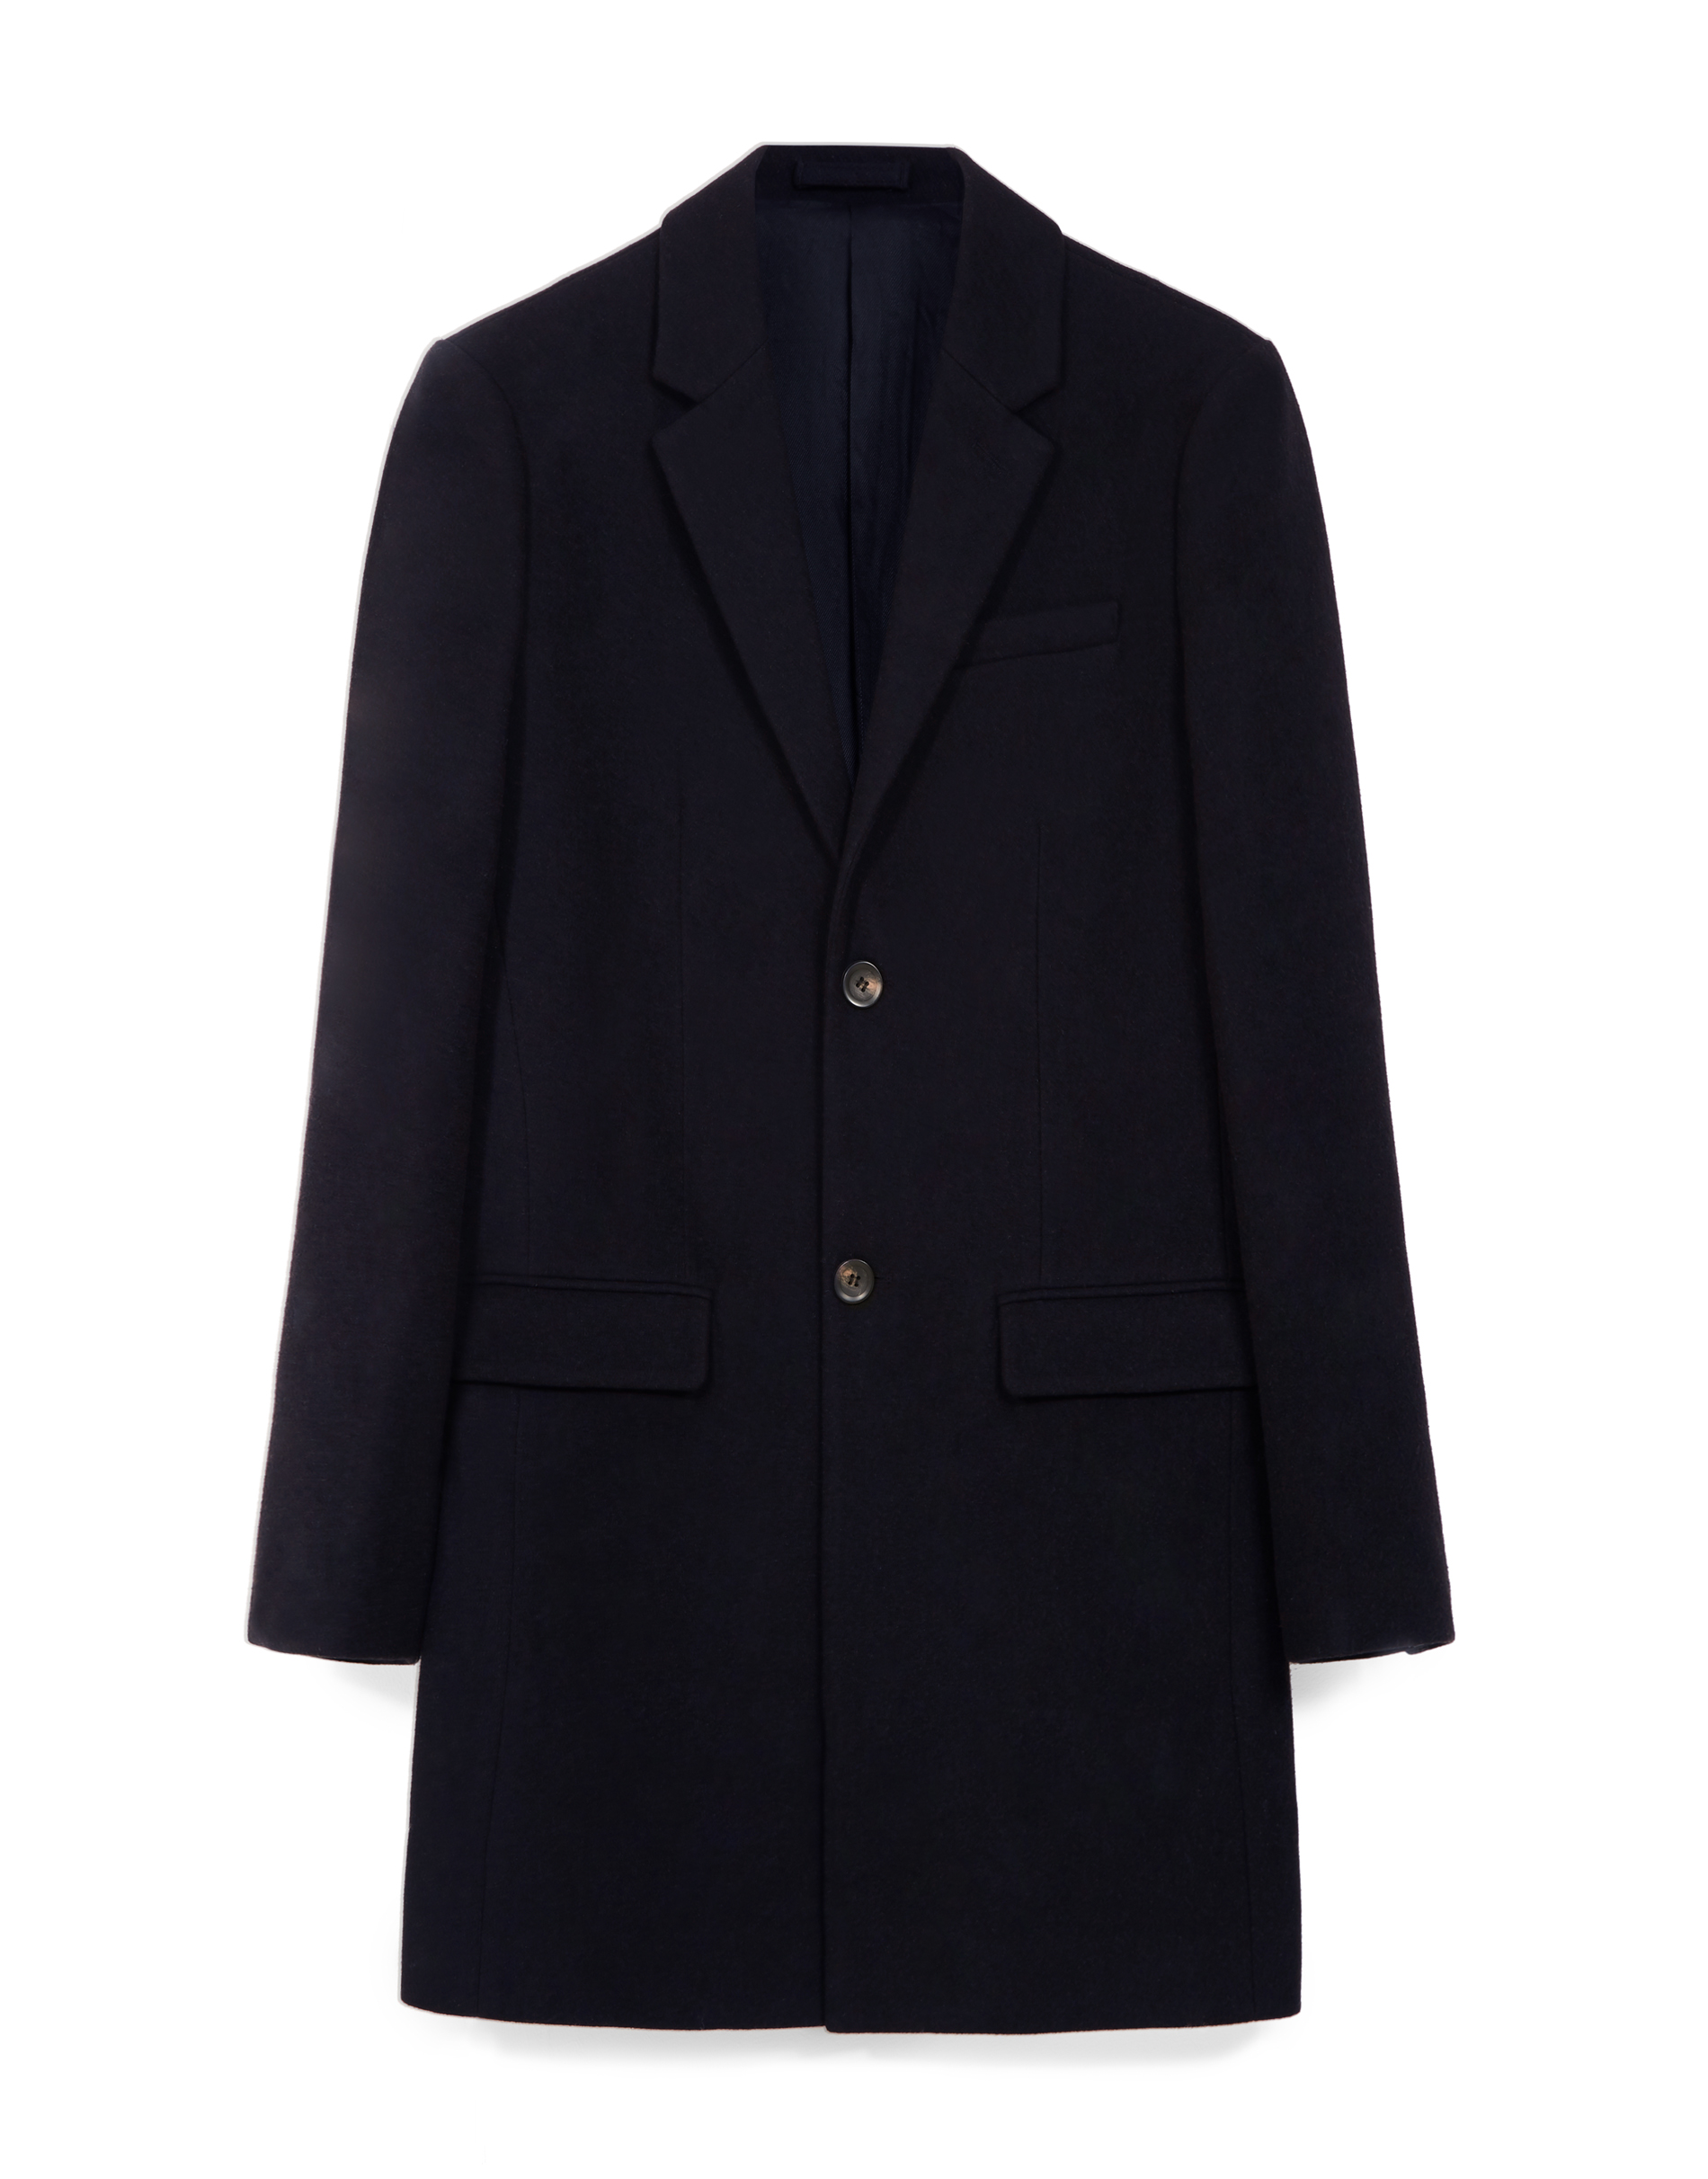 MVP Navy Greenwood Single Breasted Wool Blend Coat